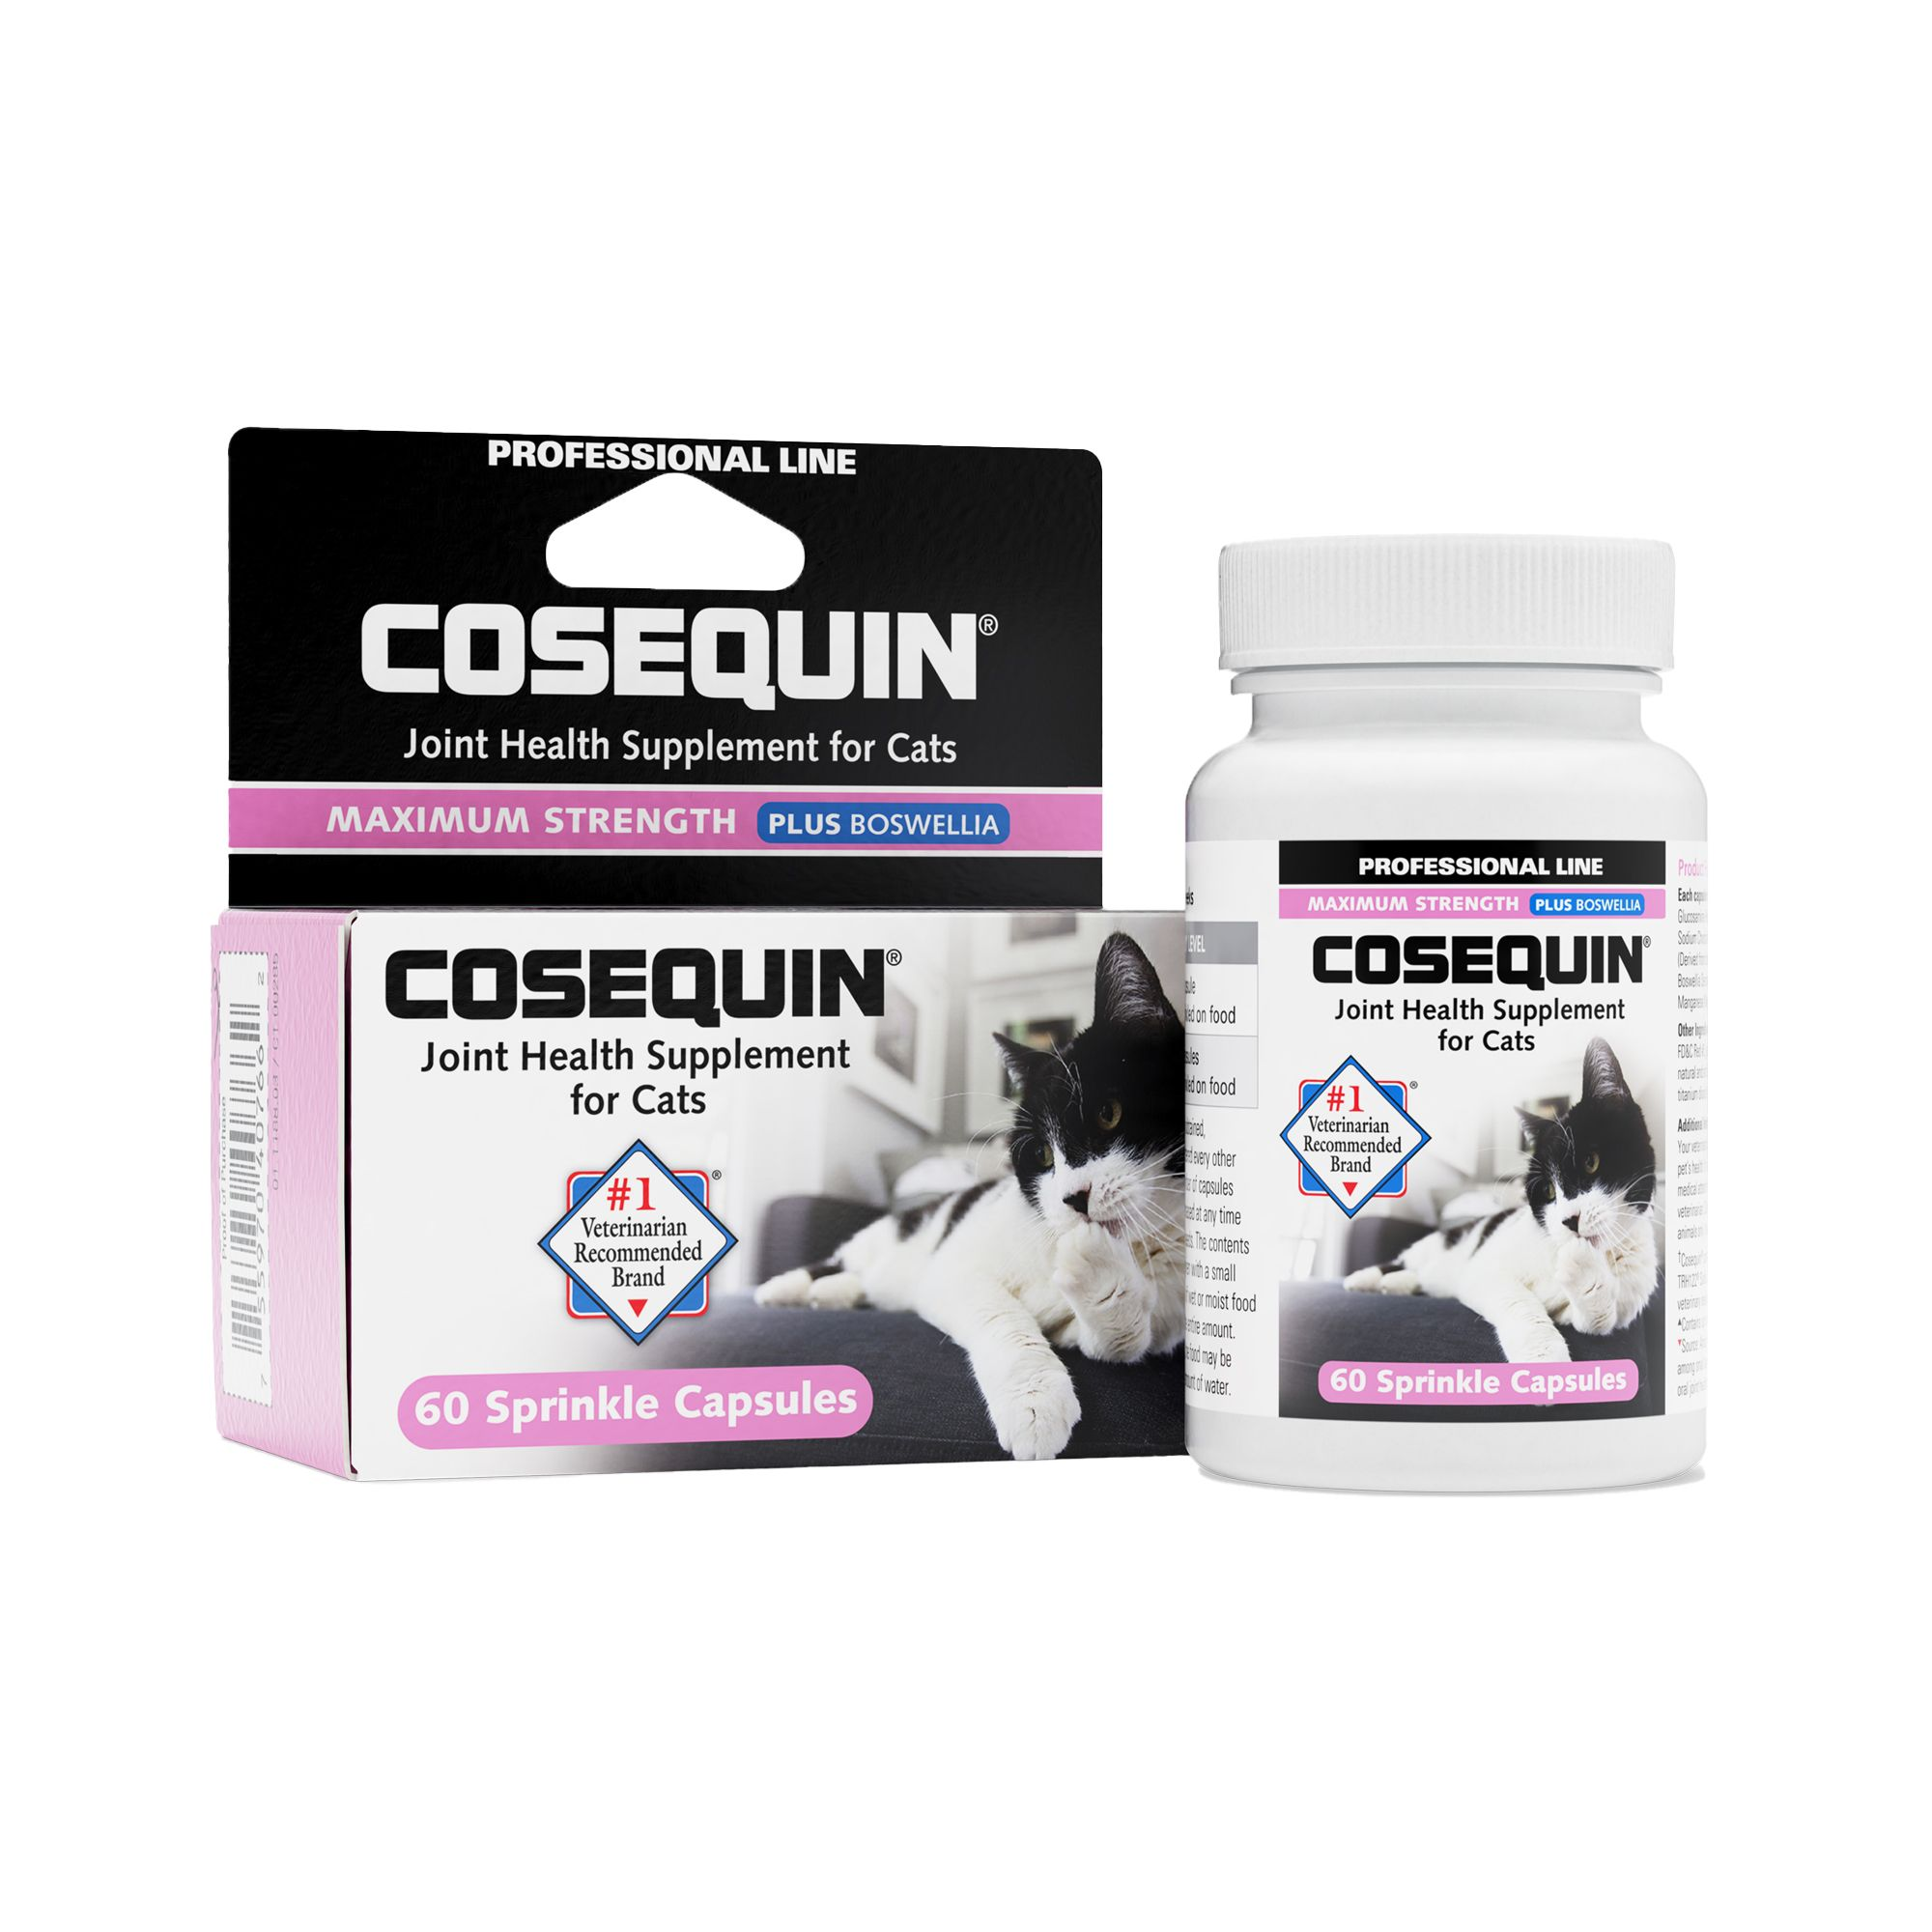 Cosequin Nutramax Professional Joint Health Cat Supplement Size 60 Count Nutramax Laboratories